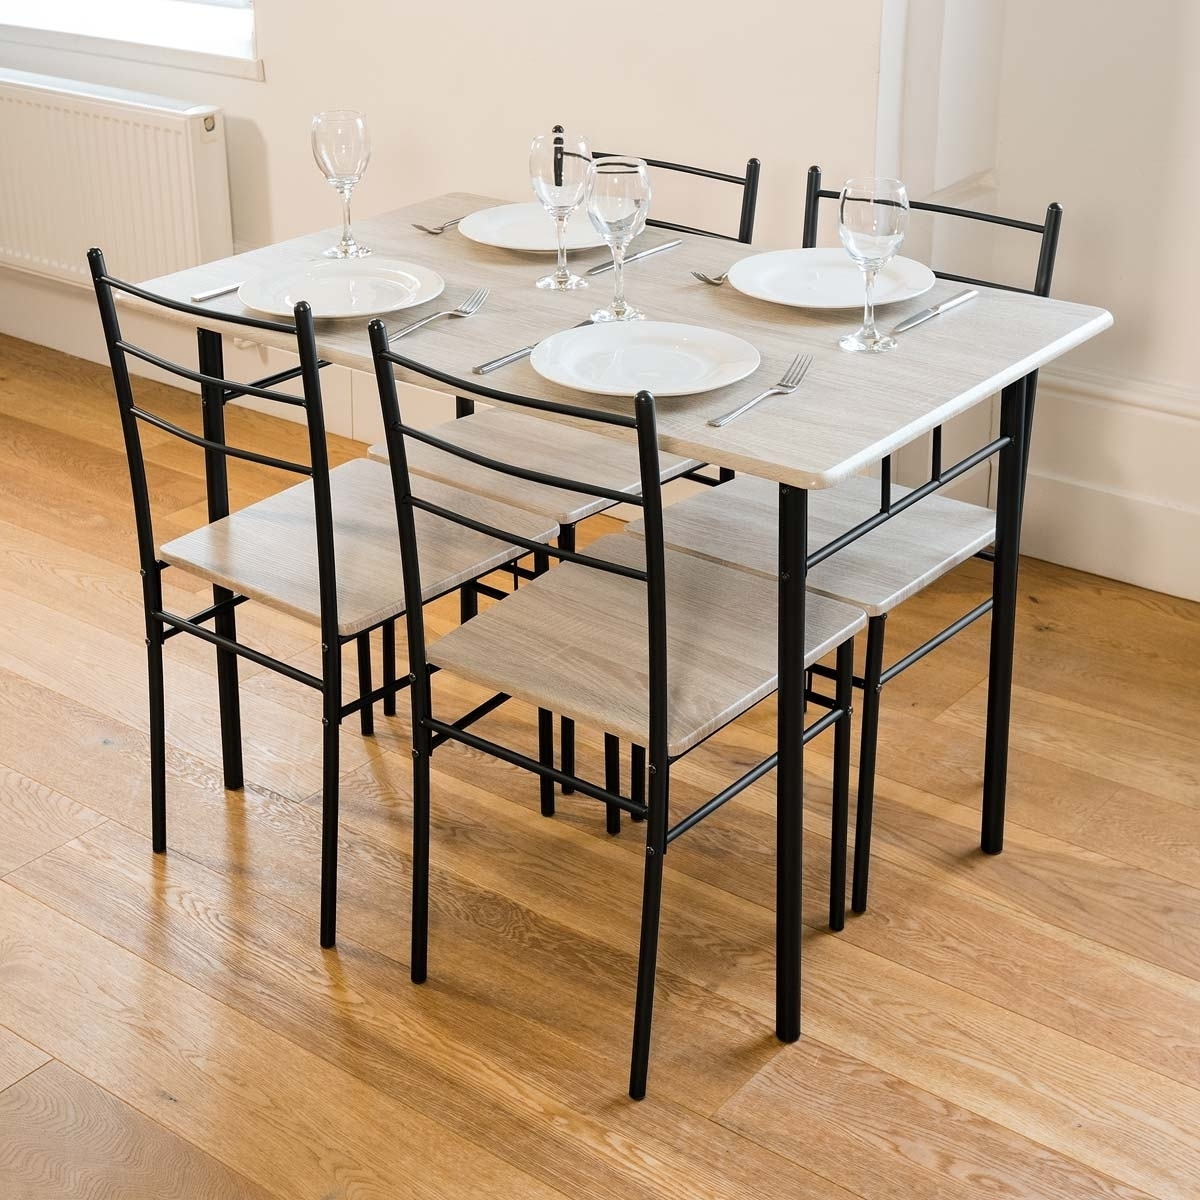 5 Piece Modern Dining Table And 4 Chairs Set Textured Wood Effect regarding Most Up-to-Date Modern Dining Sets